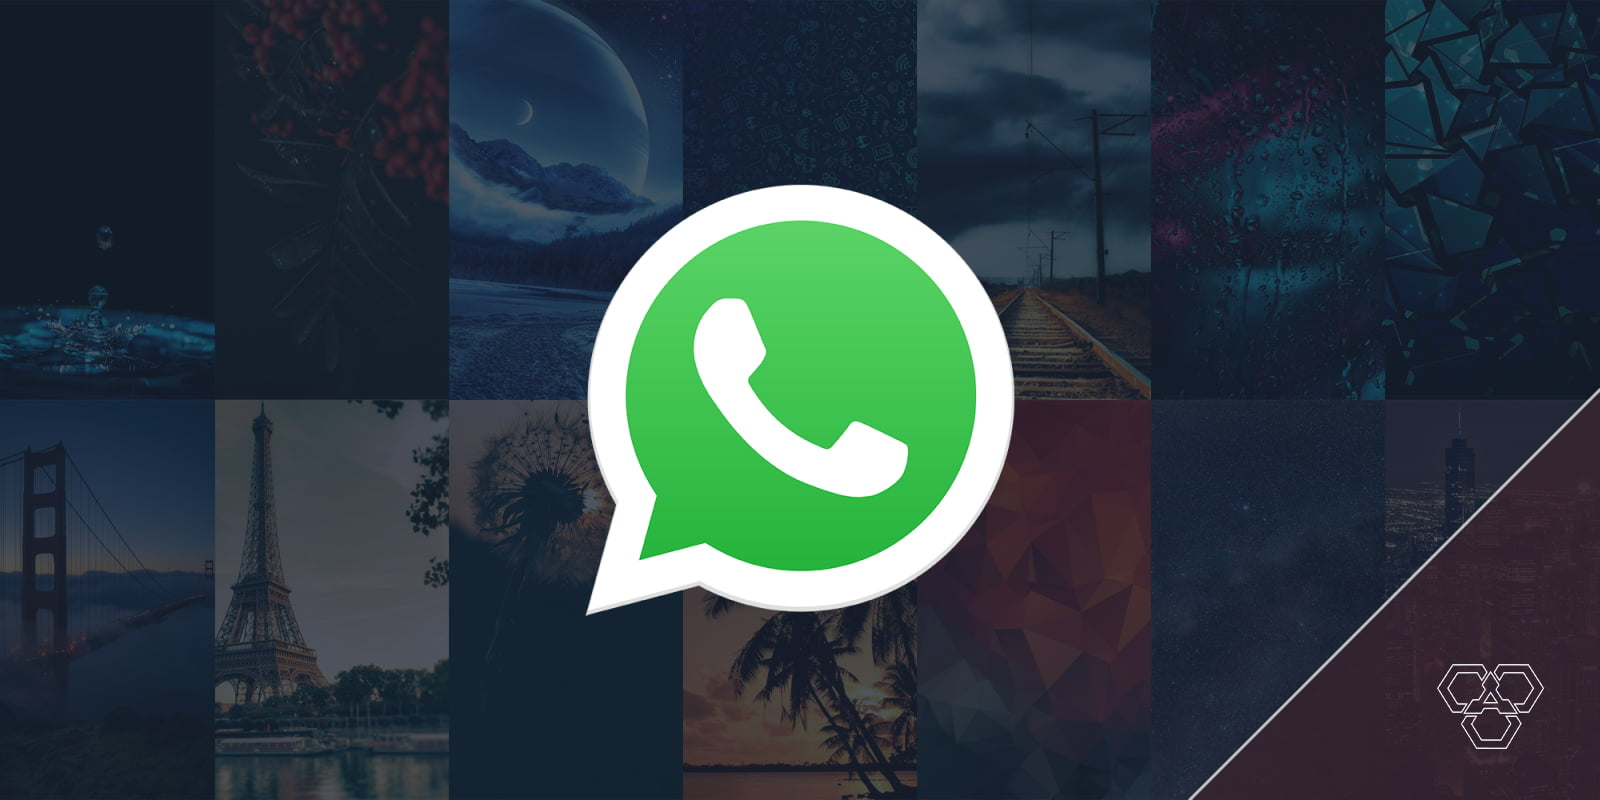 WhatsApp's new feature lets you change wallpapers for specific chats